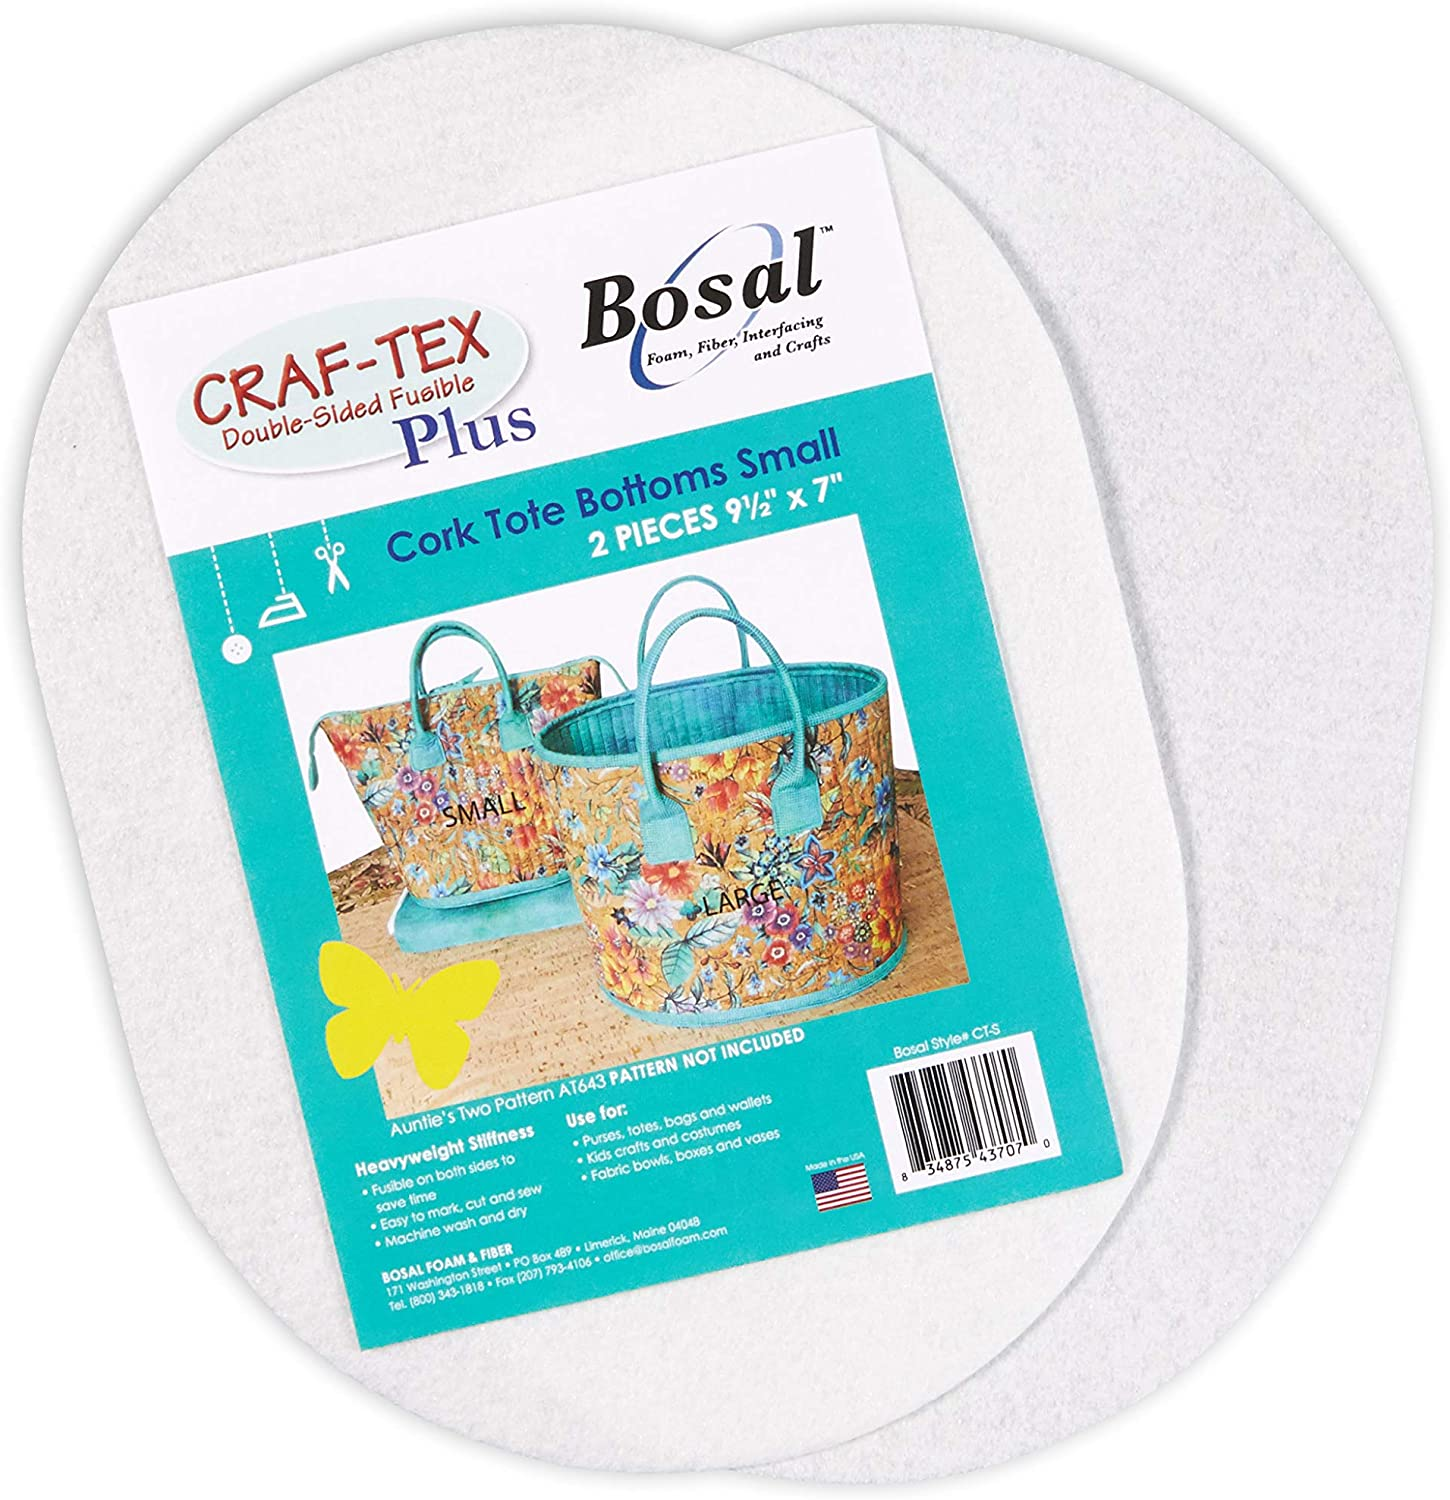 White Bosal Craf-Tex Plus Stiff Non-Woven Double-Sided Fusible 7 Stabilizer